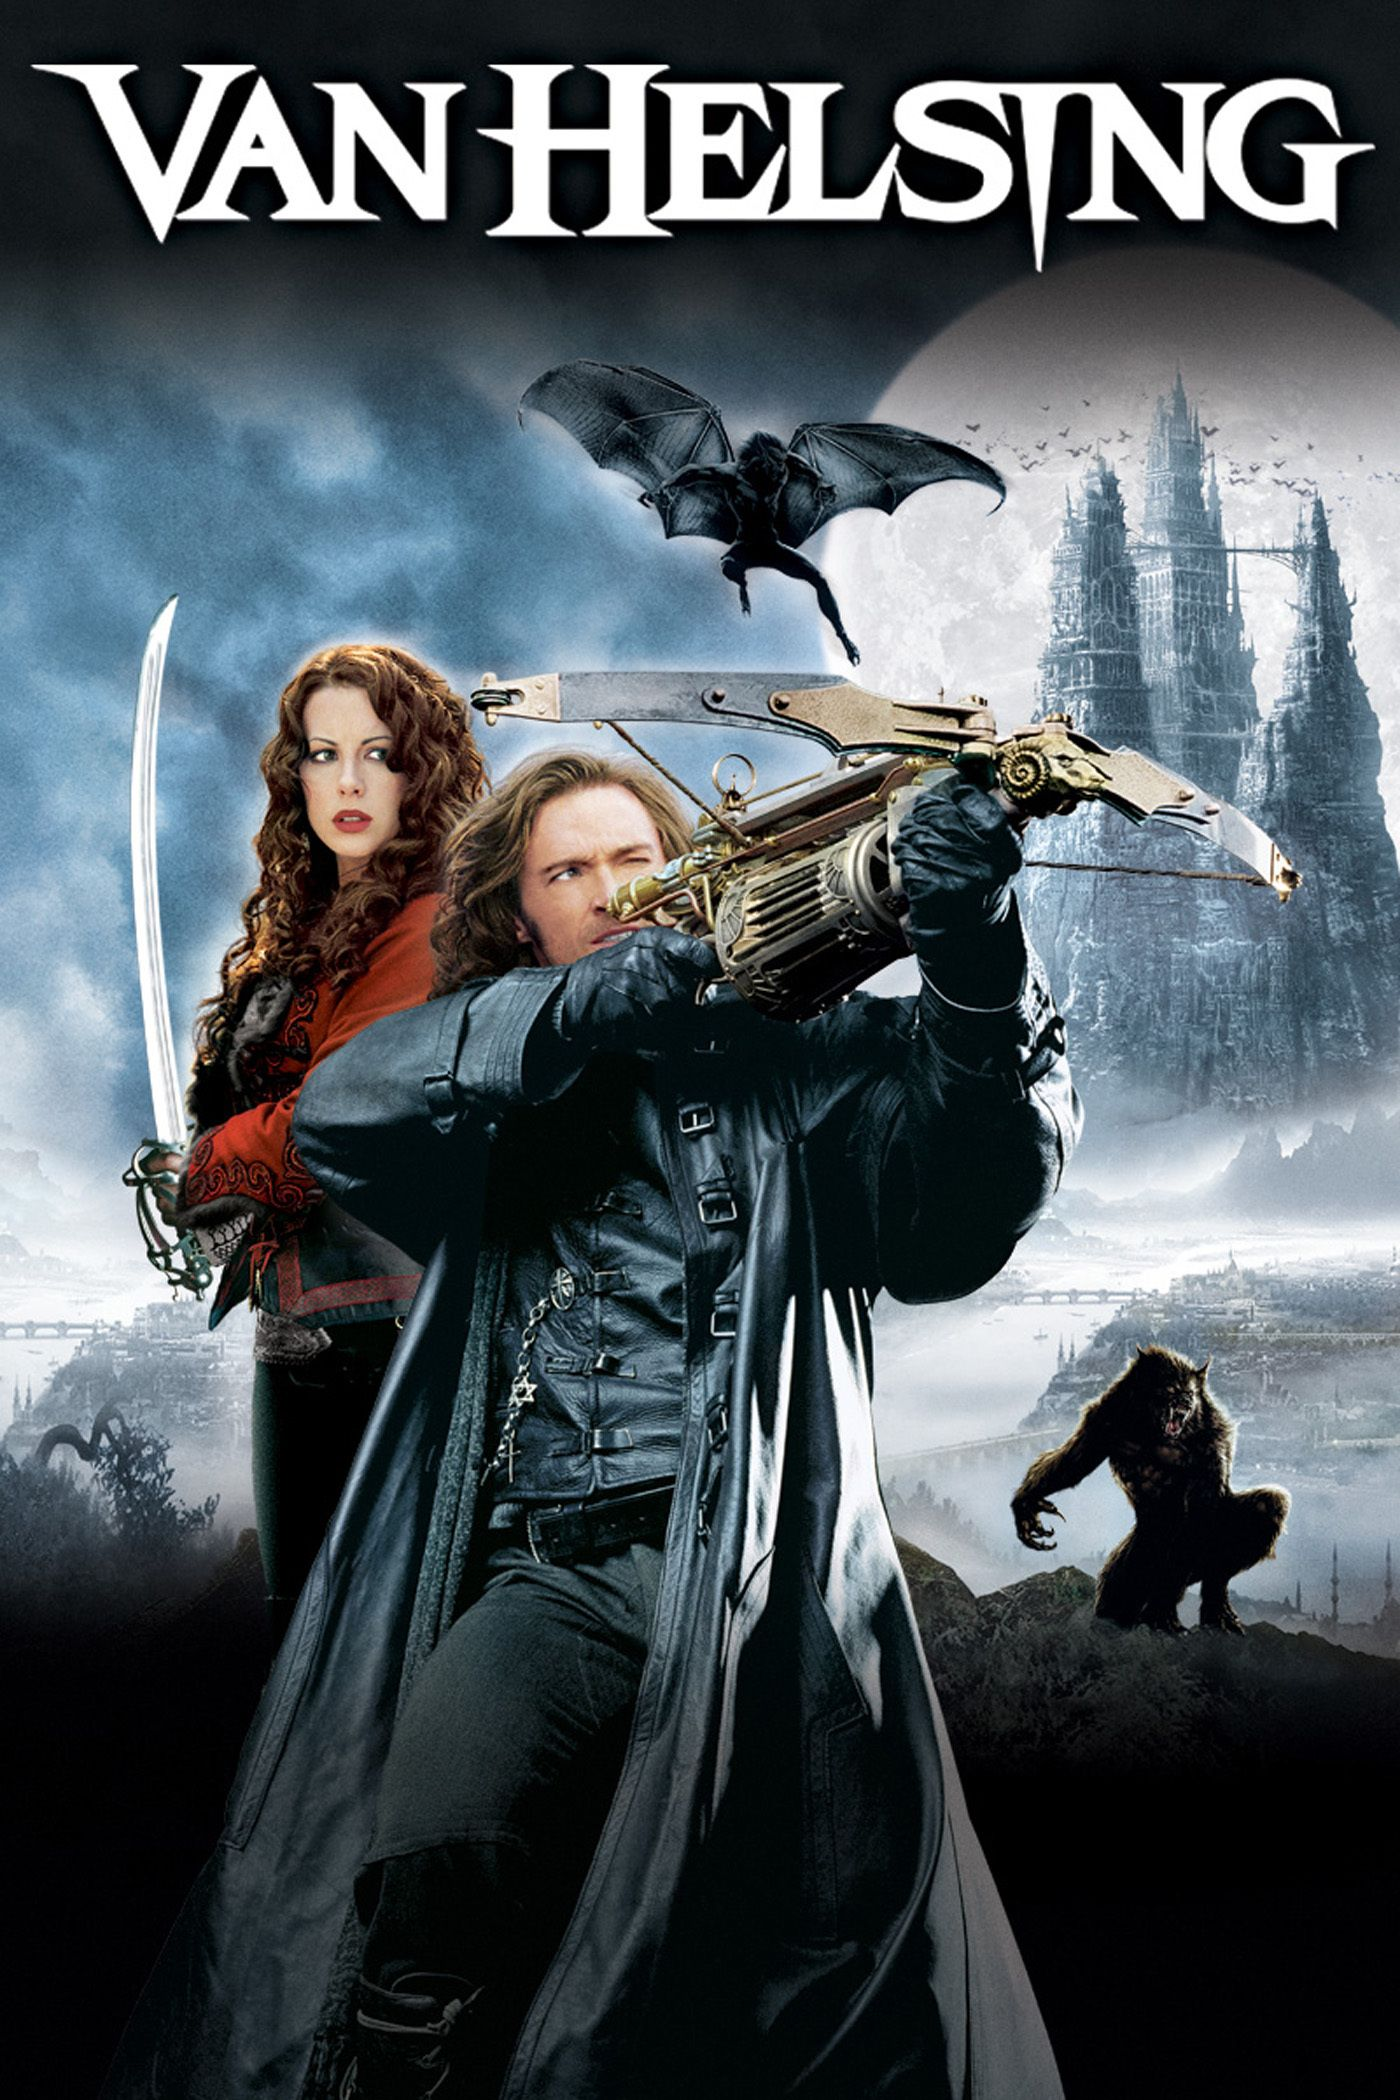 Van Helsing (2004) - Directed by: Stephen SommersStarring: Hugh Jackman, Kate Beckinsale, Richard RoxburghRated: PG-13 for Nonstop Creature Action Violence and Frightening Images, and for SensualityRunning Time: 2 h 11 mTMM Score: 1.5 stars out of 5STRENGTHS: Some Sets, Interesting ConceptWEAKNESSES: Writing, Directing, Execution, Lack of Restraint